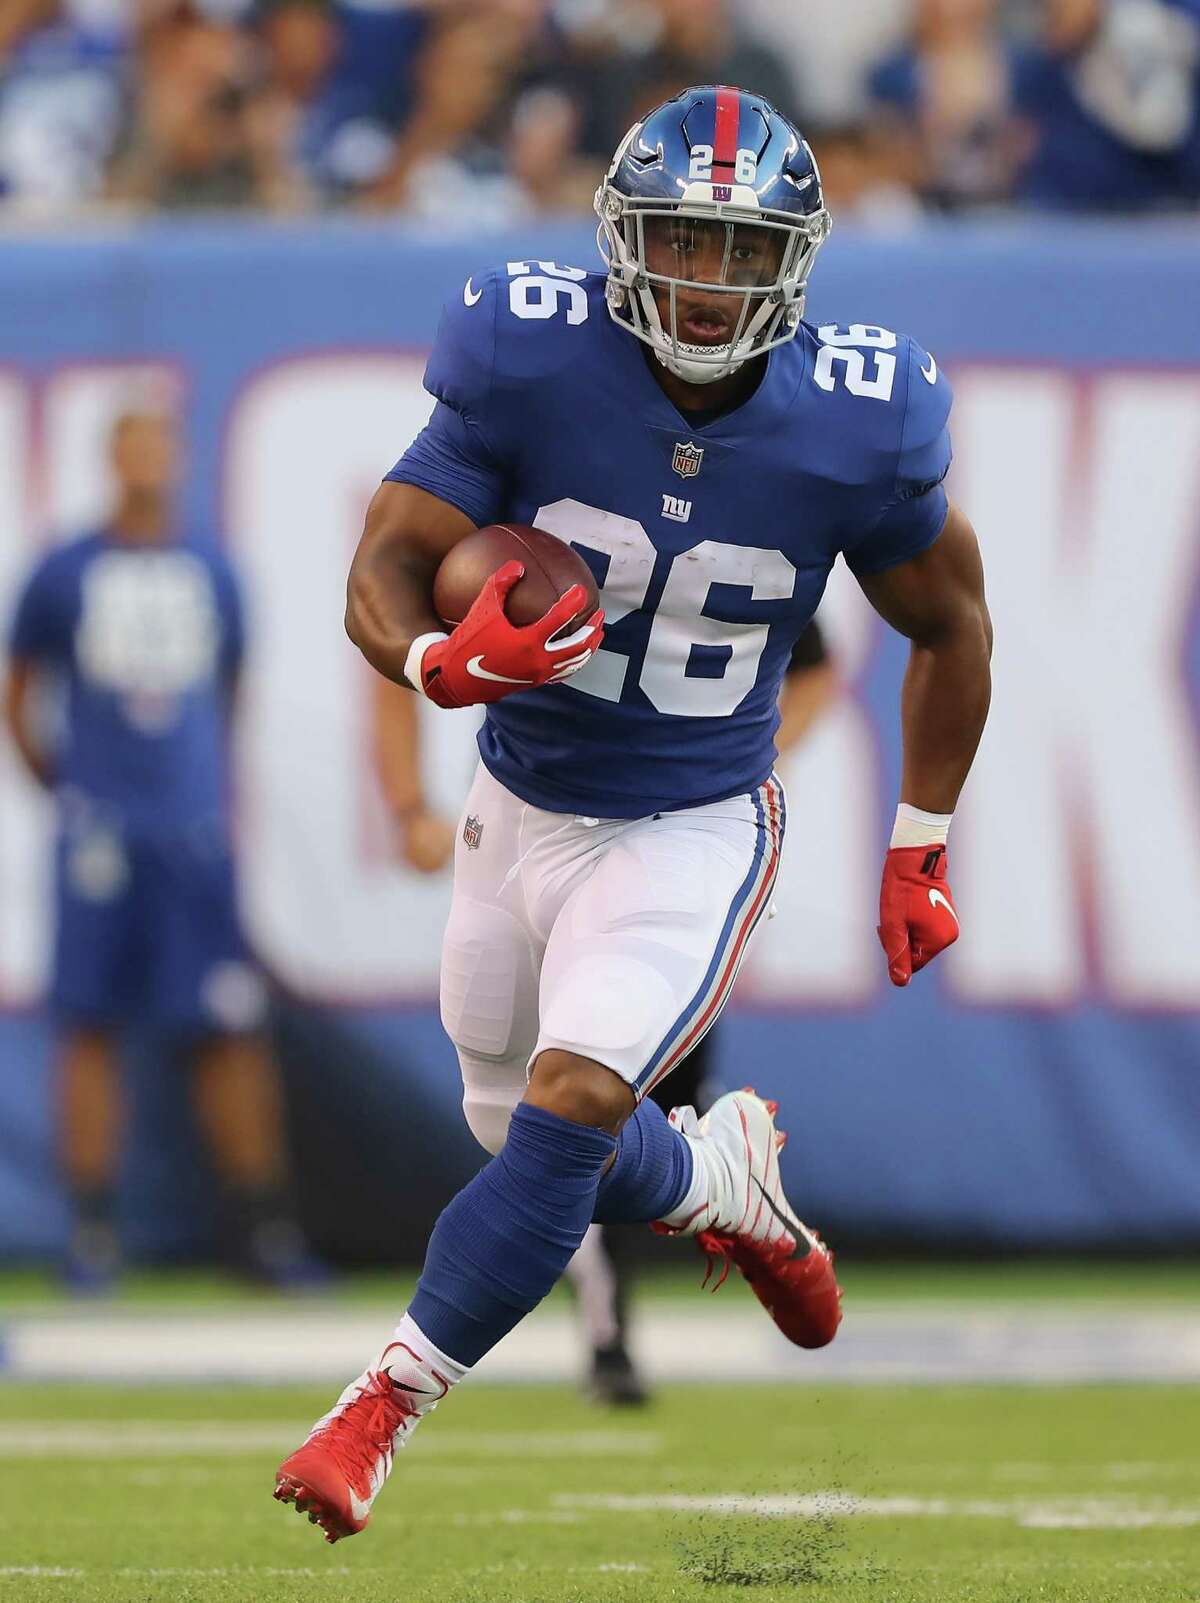 EAST RUTHERFORD, NJ - AUGUST 09: Saquon Barkley #26 of the New York Giants carries the ball in the first quarter against the Cleveland Browns during their preseason game on August 9,2018 at MetLife Stadium in East Rutherford, New Jersey. (Photo by Elsa/Getty Images)